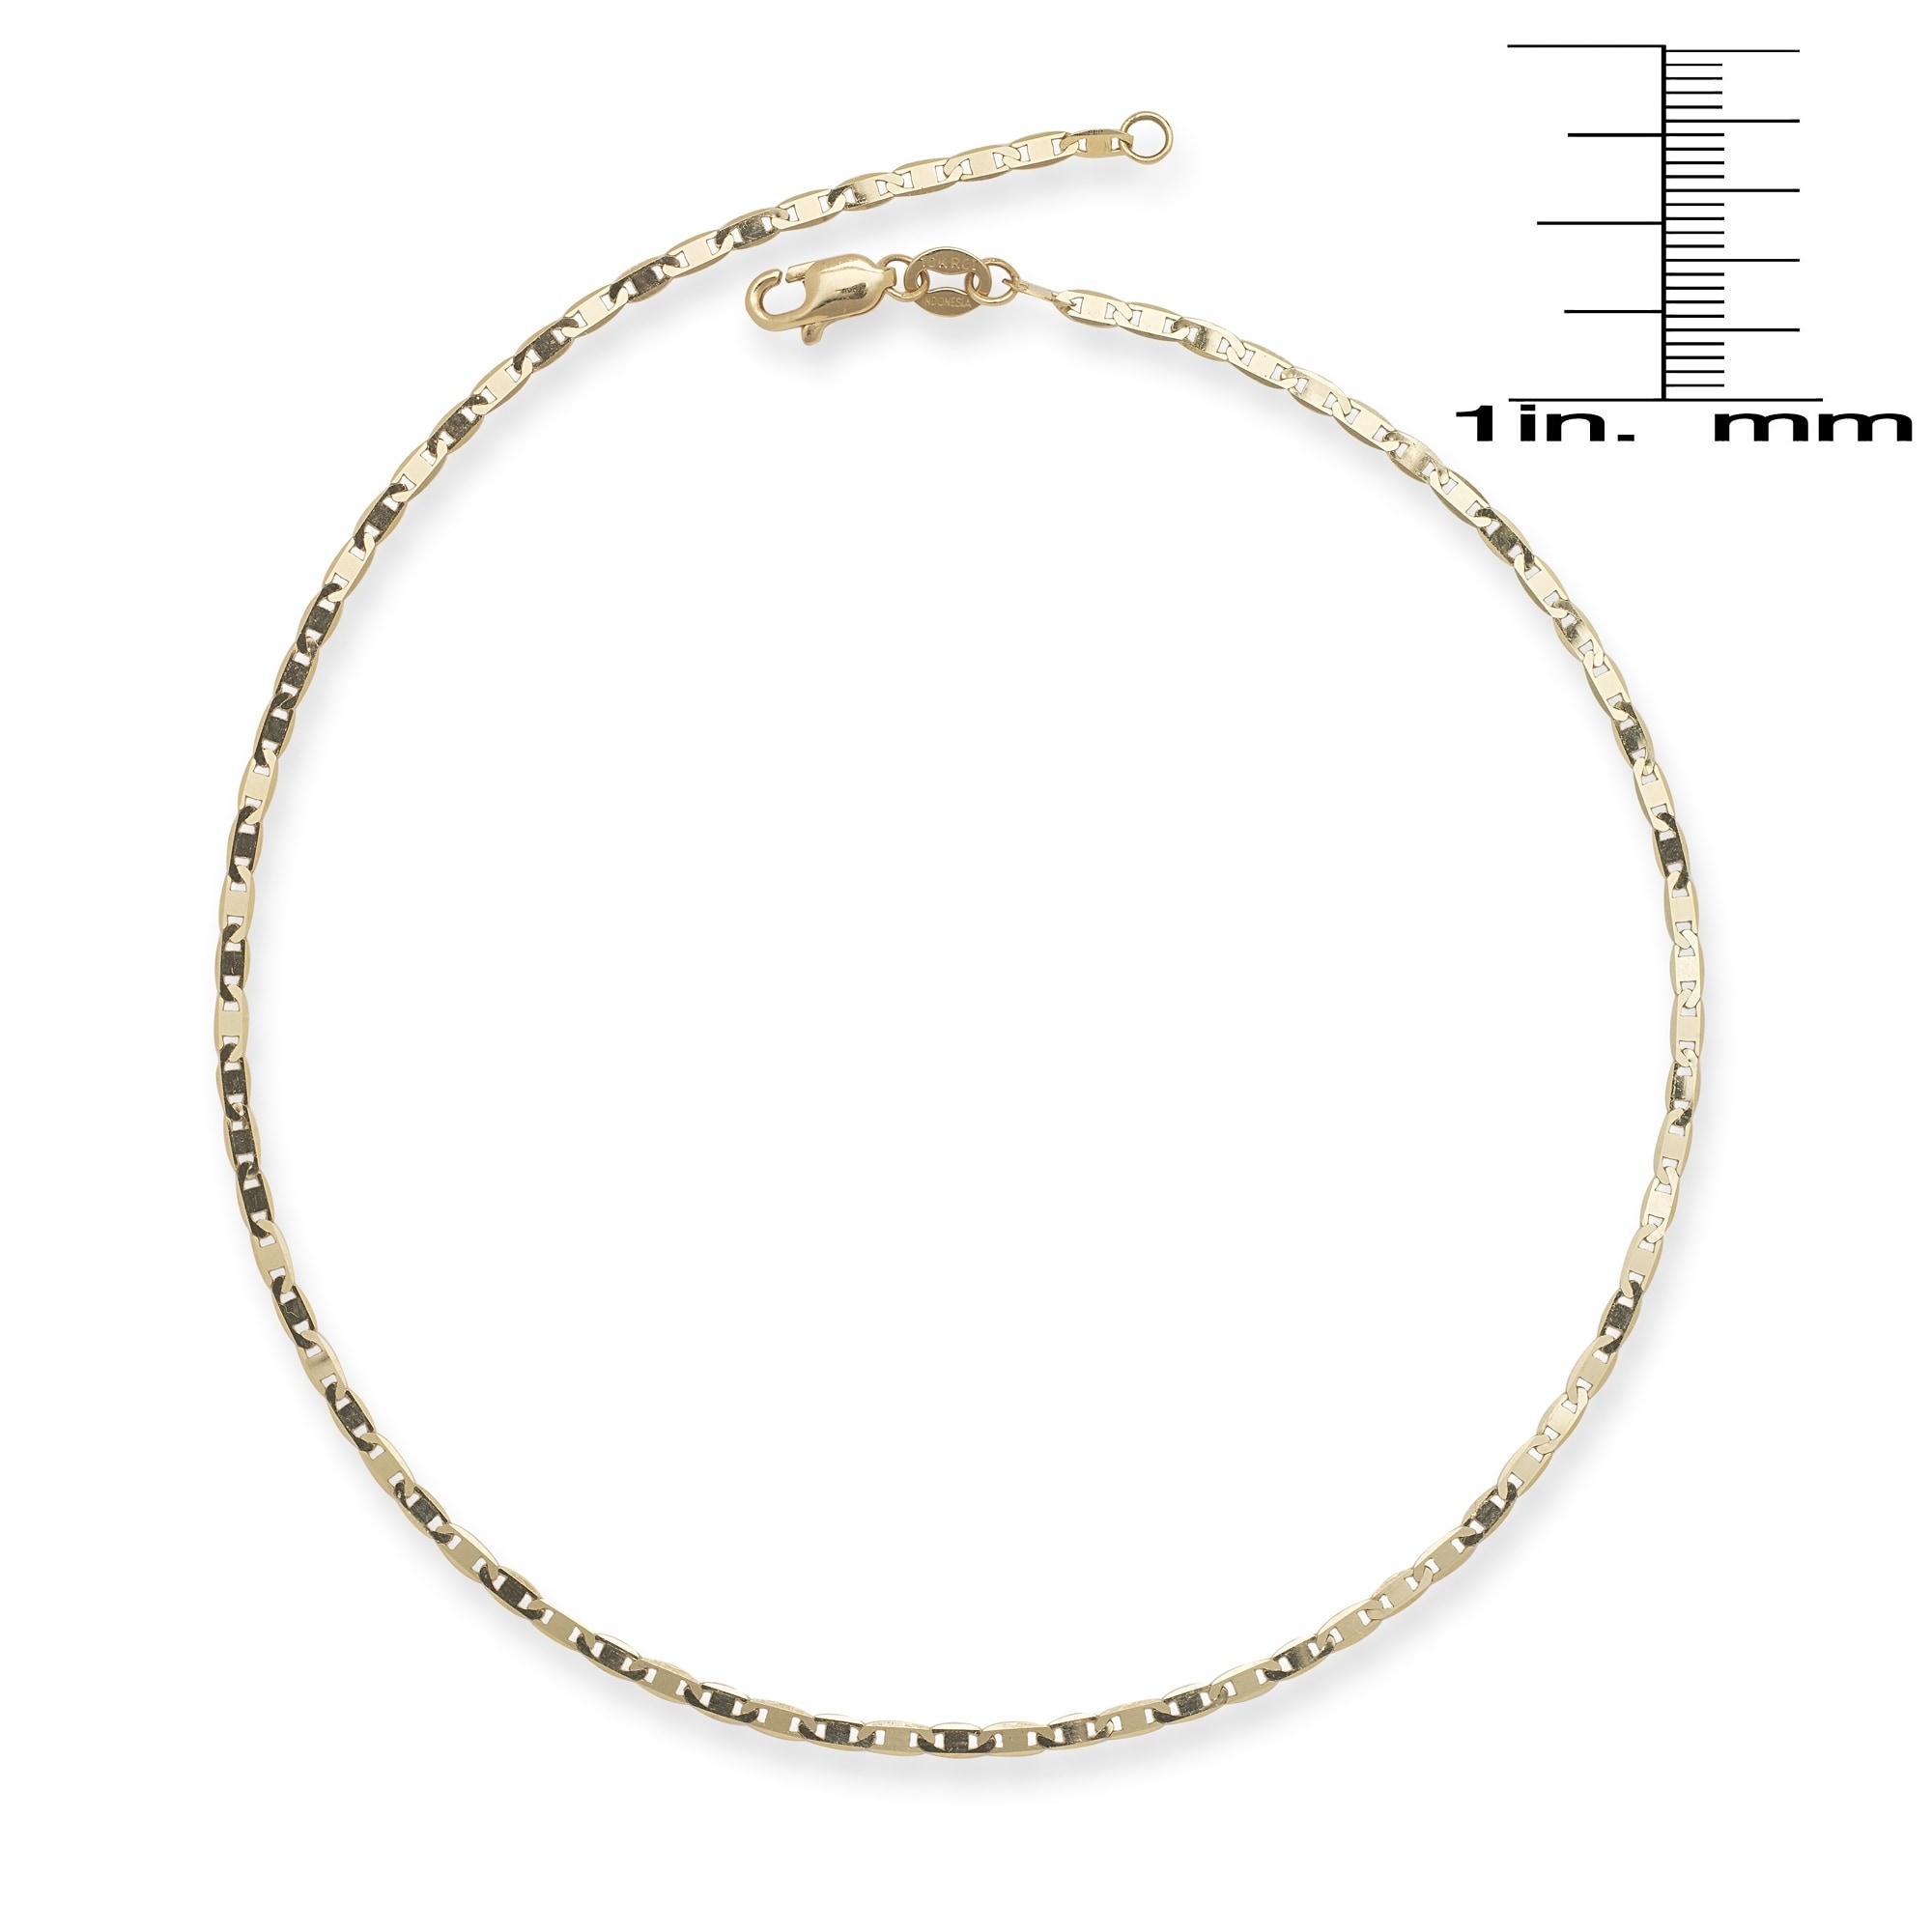 anklet free jewelry figaro inches karat product rose yellow overstock watches gold solid inc bracelet today mcs shipping